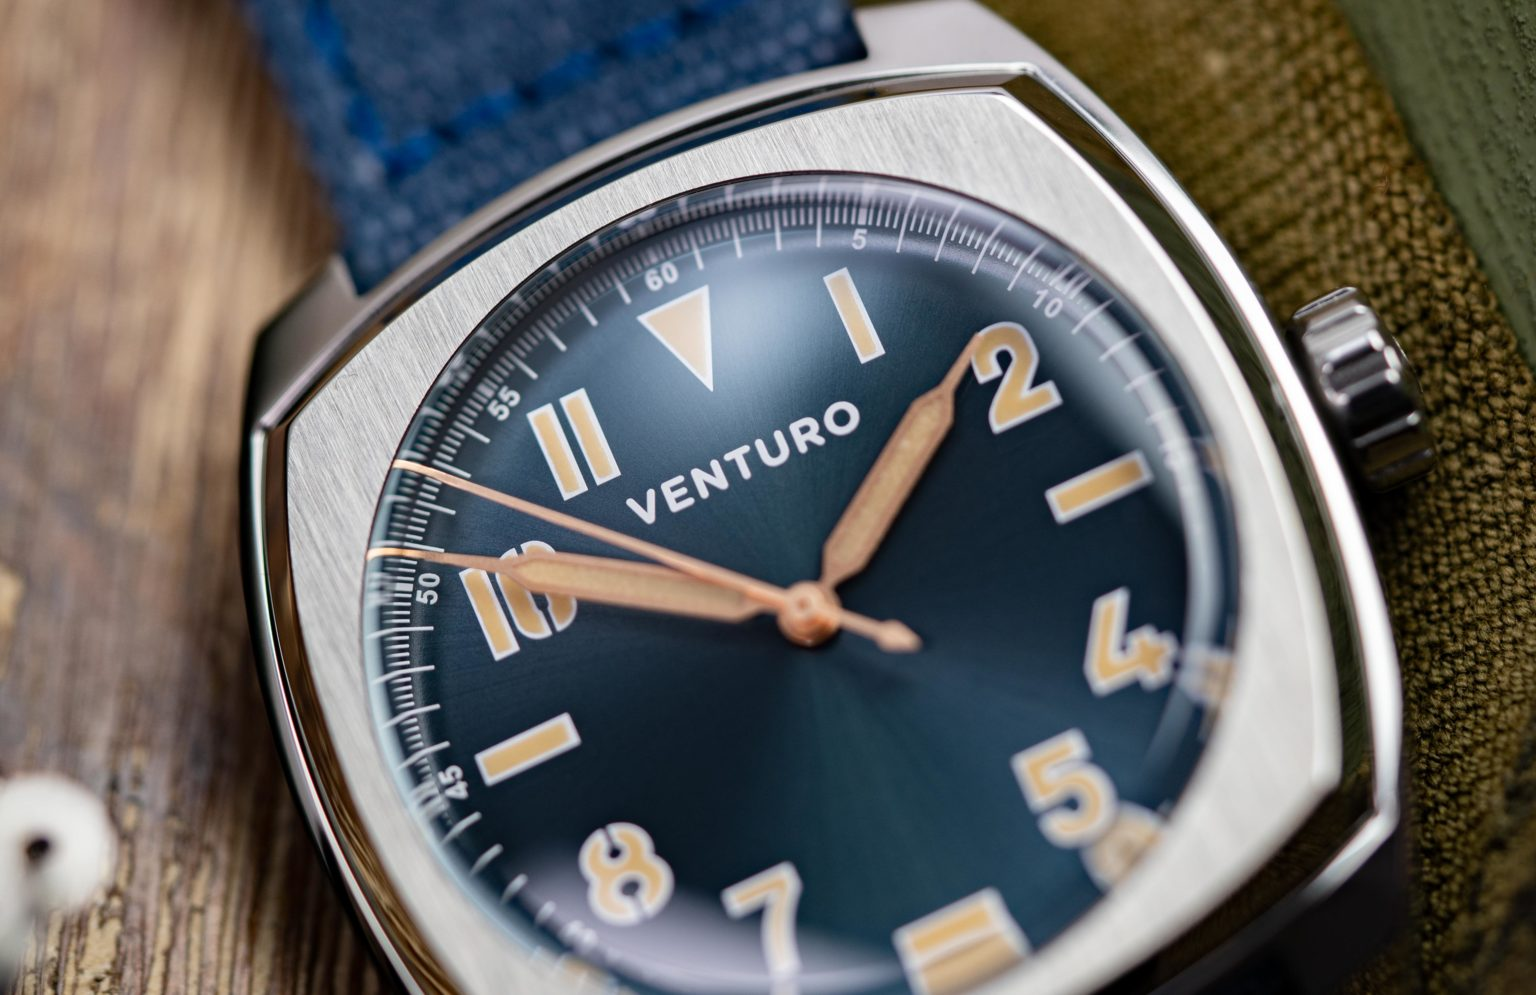 Venturo-Field-Watch-2-14